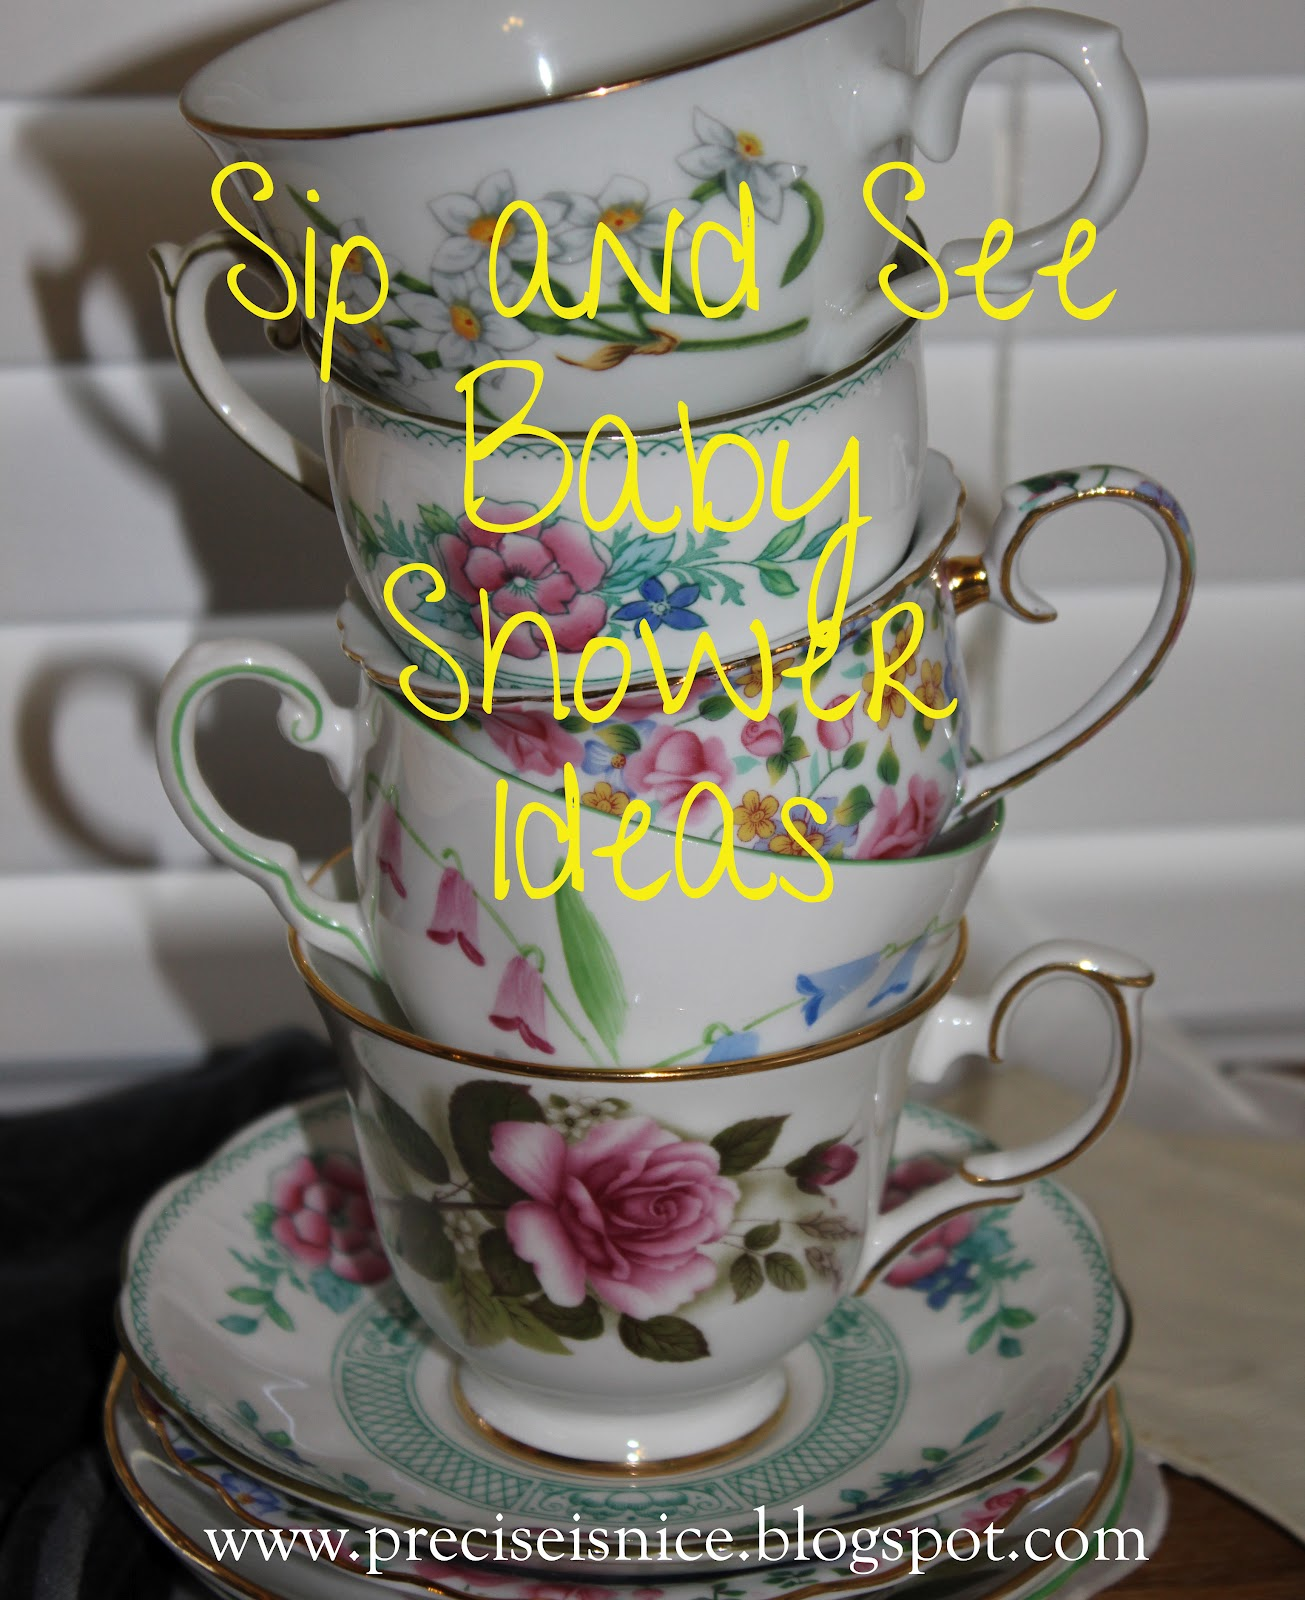 precise is nice sip and see baby shower tea party style